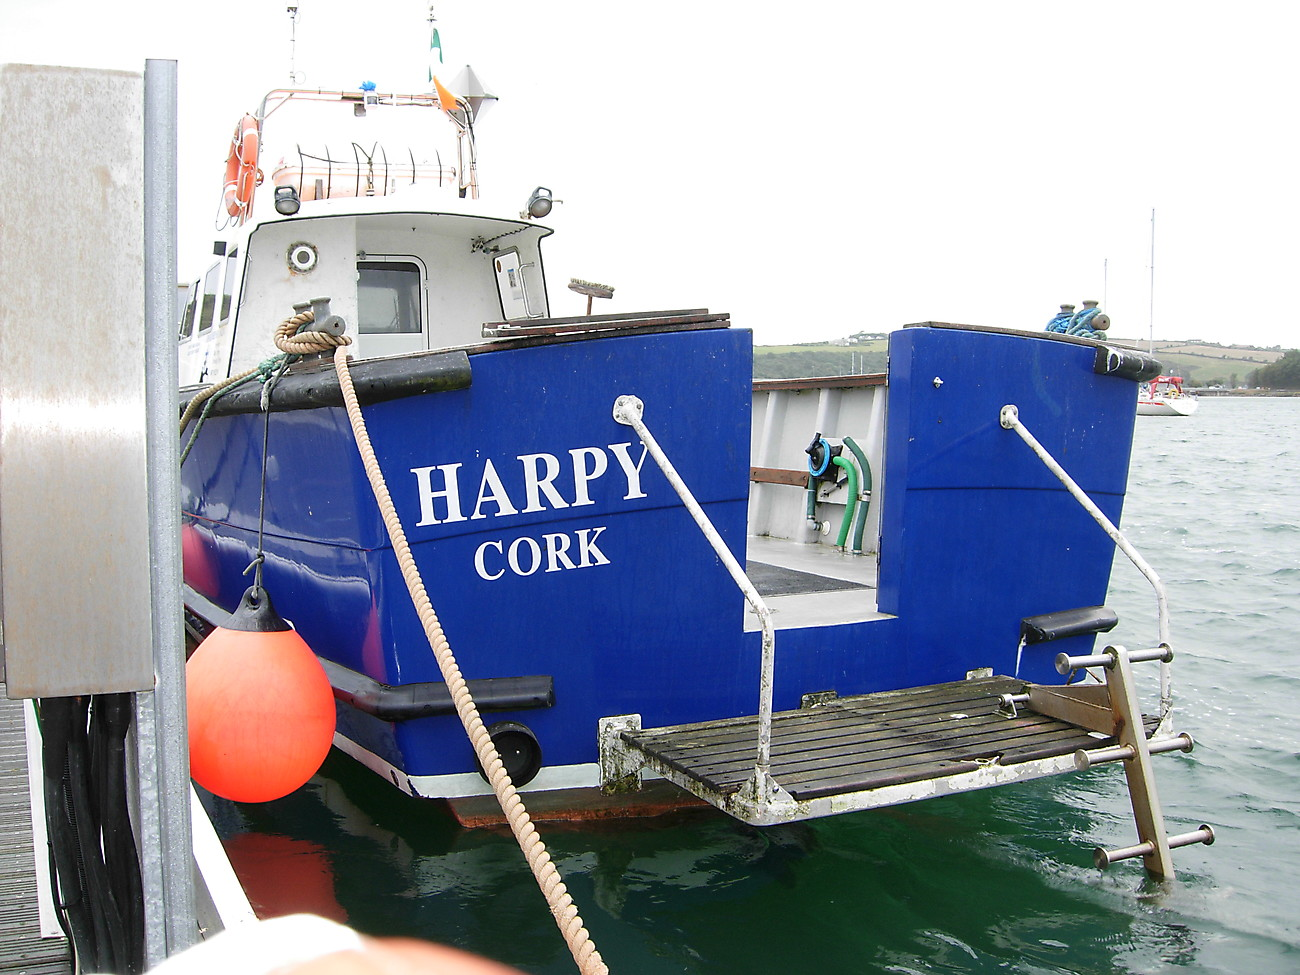 HARPY: Dive  ladder down, stern door open.